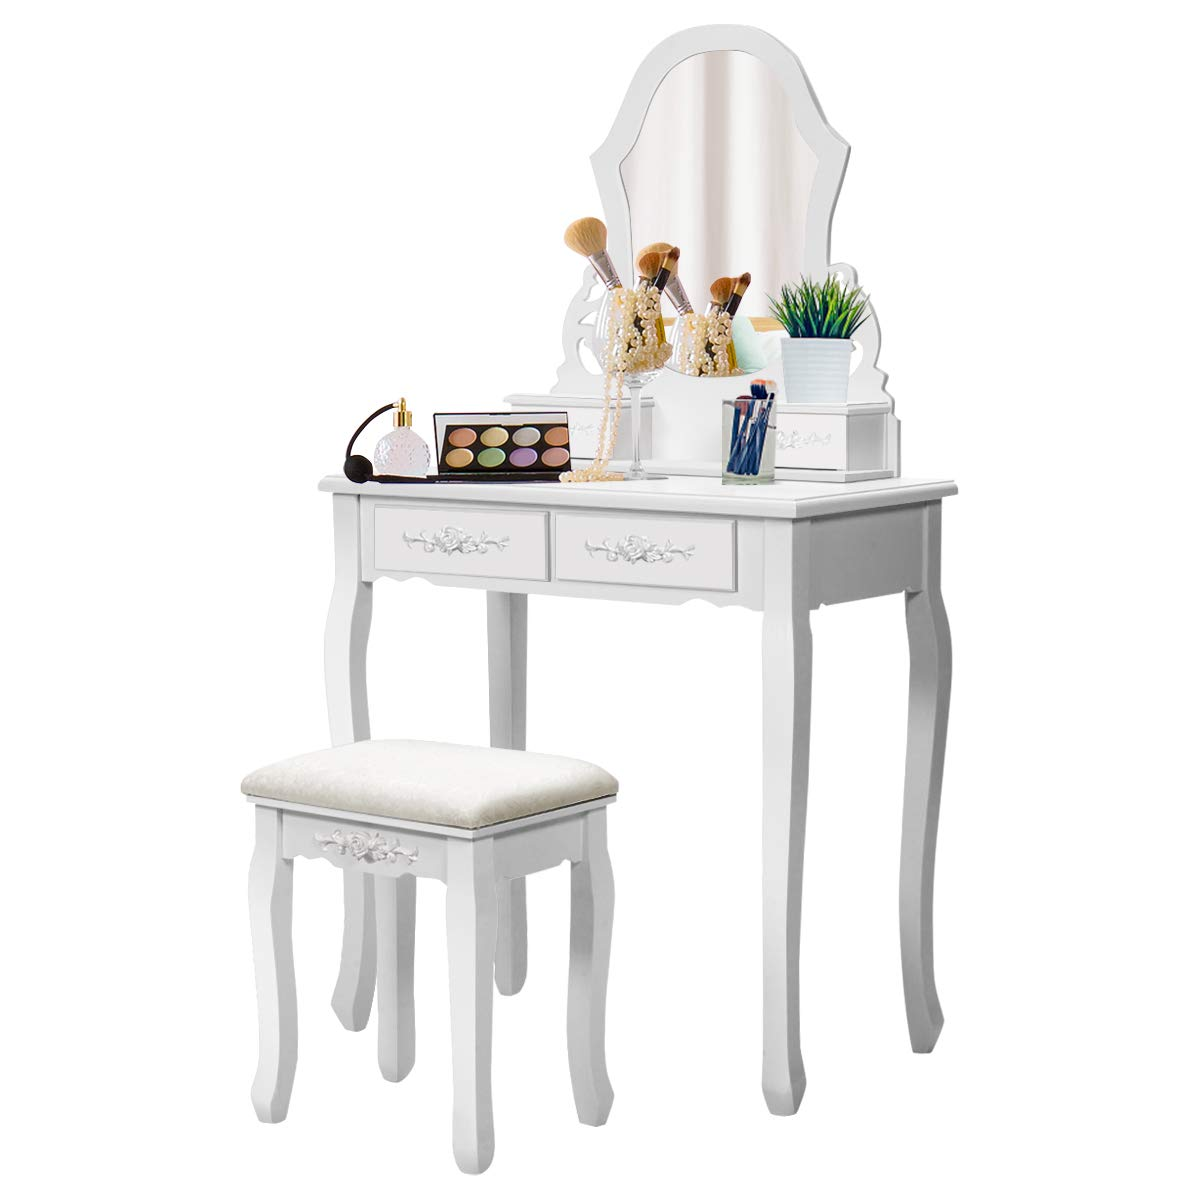 Giantex vanity table set with mirror for makeup modern cushioned bench stool bedroom wood style furniture top removable multifunctional writing desk